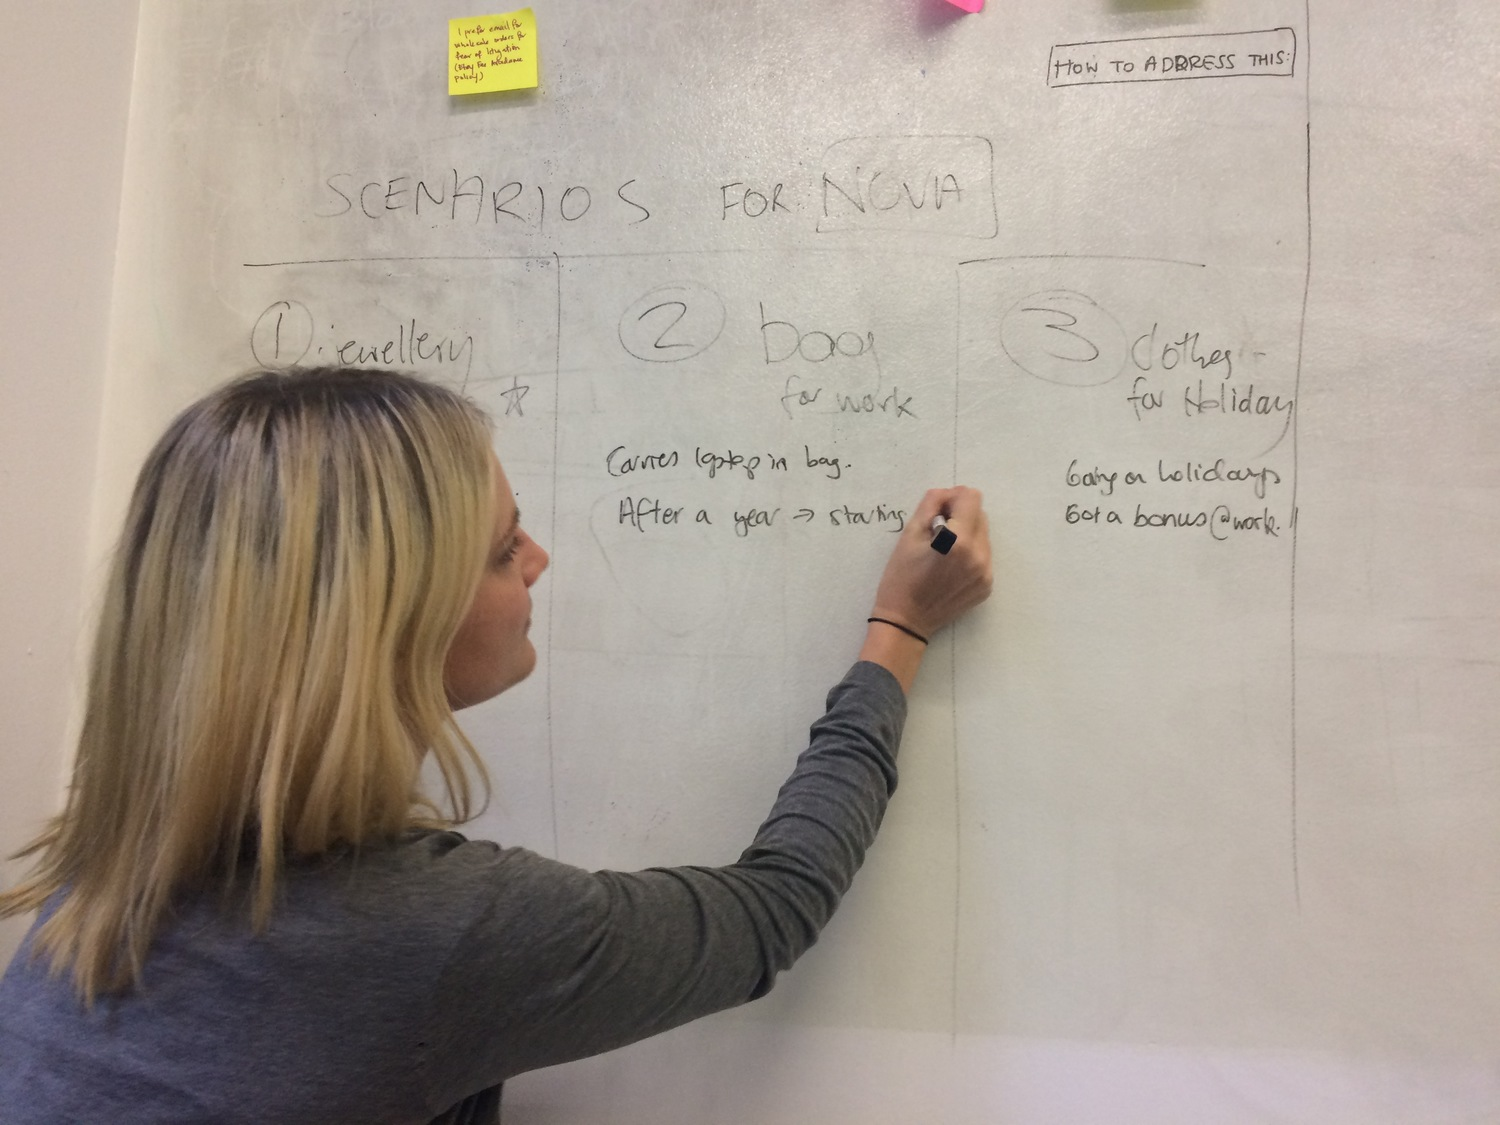 Creating scenarios based on user research